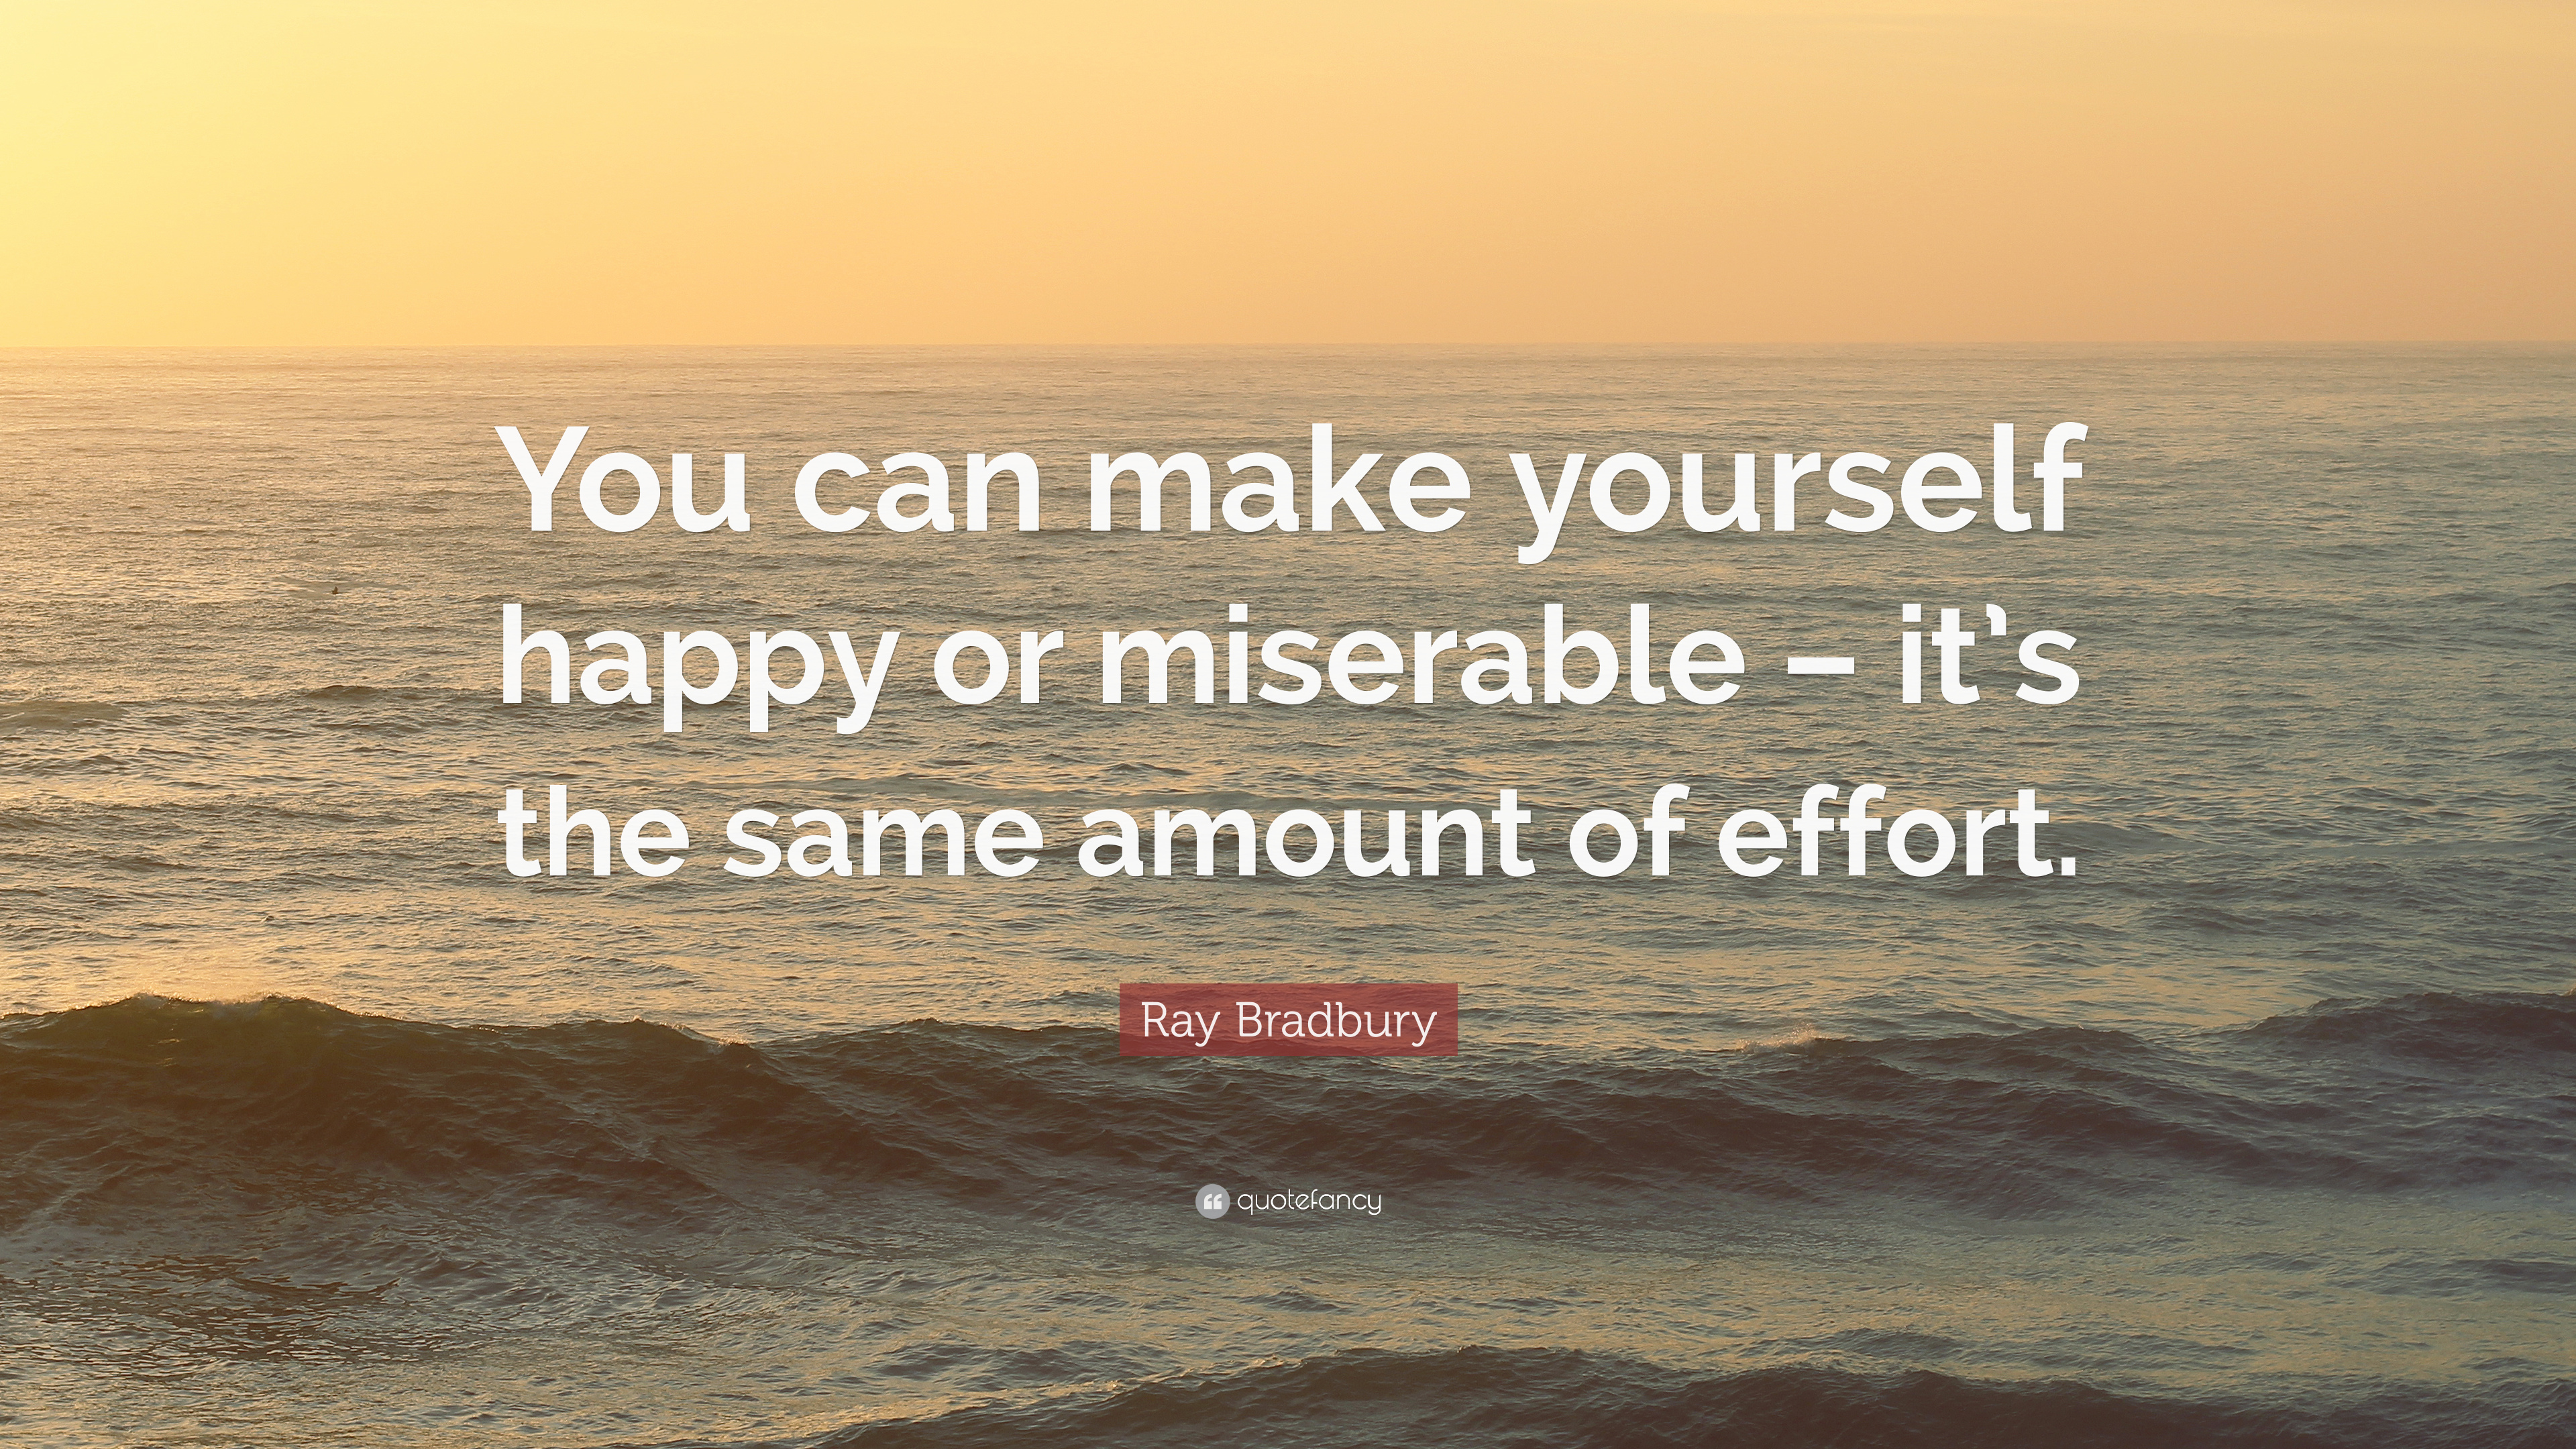 Quotes about making yourself happy page 6 the best quotes ray bradbury quote you can make yourself happy or miserable it s the same ccuart Images